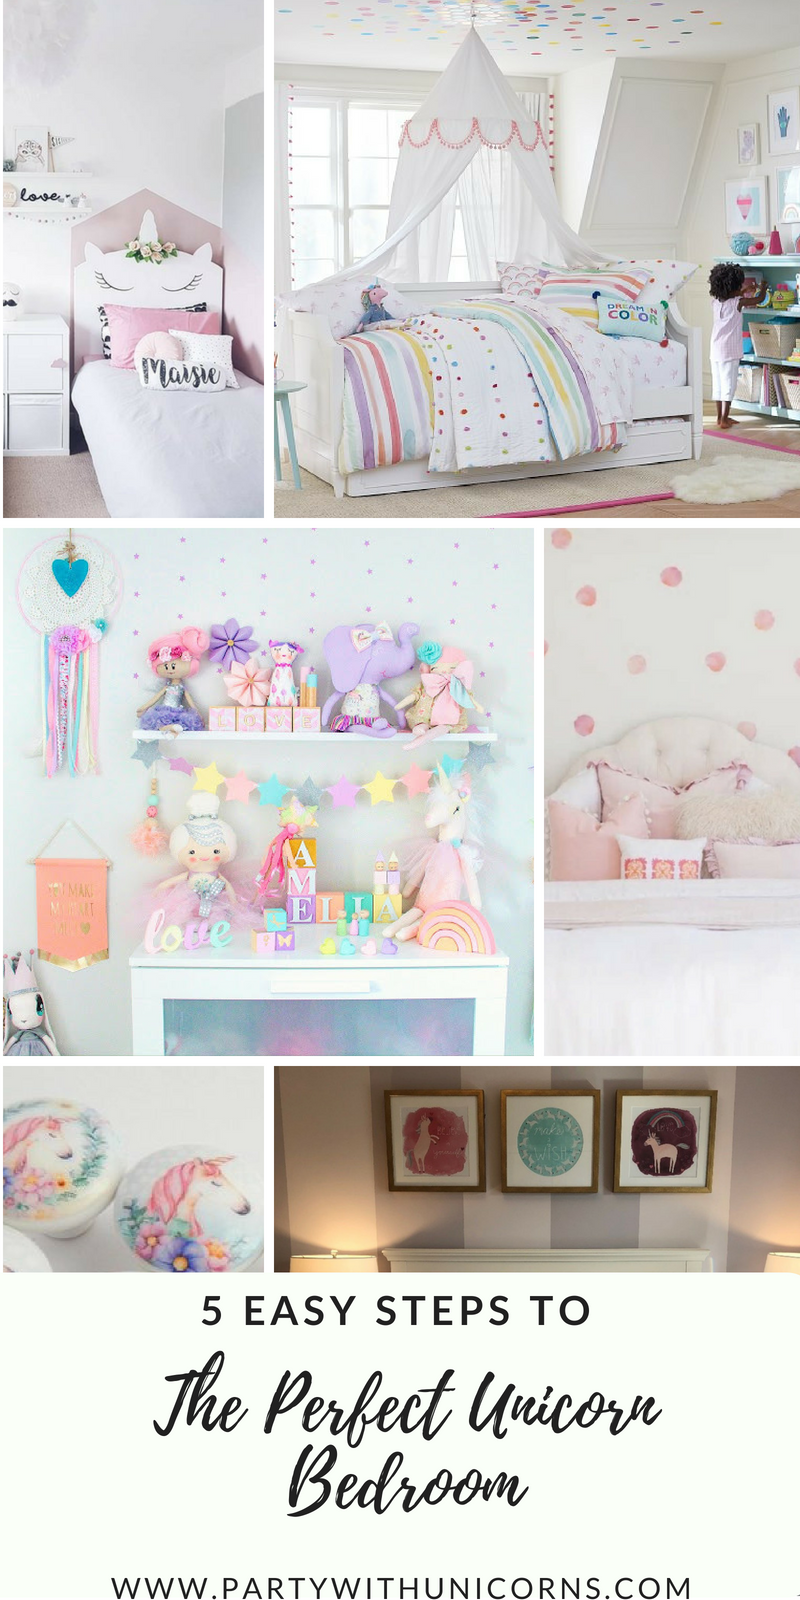 Unicorn Bedroom Ideas 5 Simple Steps Party With Unicorns Unicorn Bedroom Decor Unicorn Bedroom Kids Unicorn Room Decor